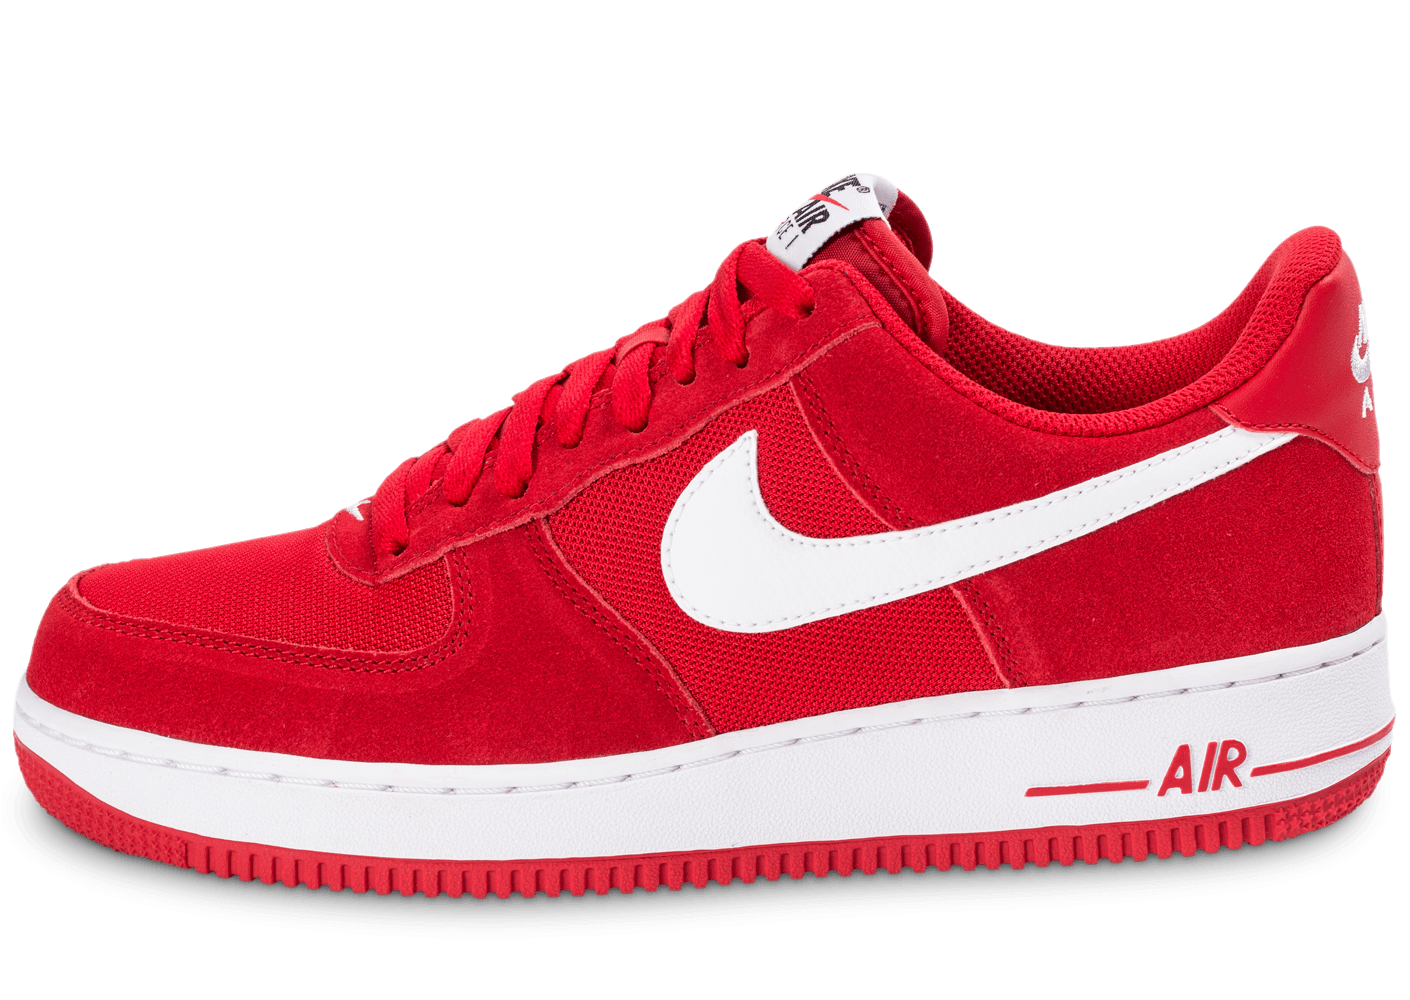 air force one homme rouge et blanche